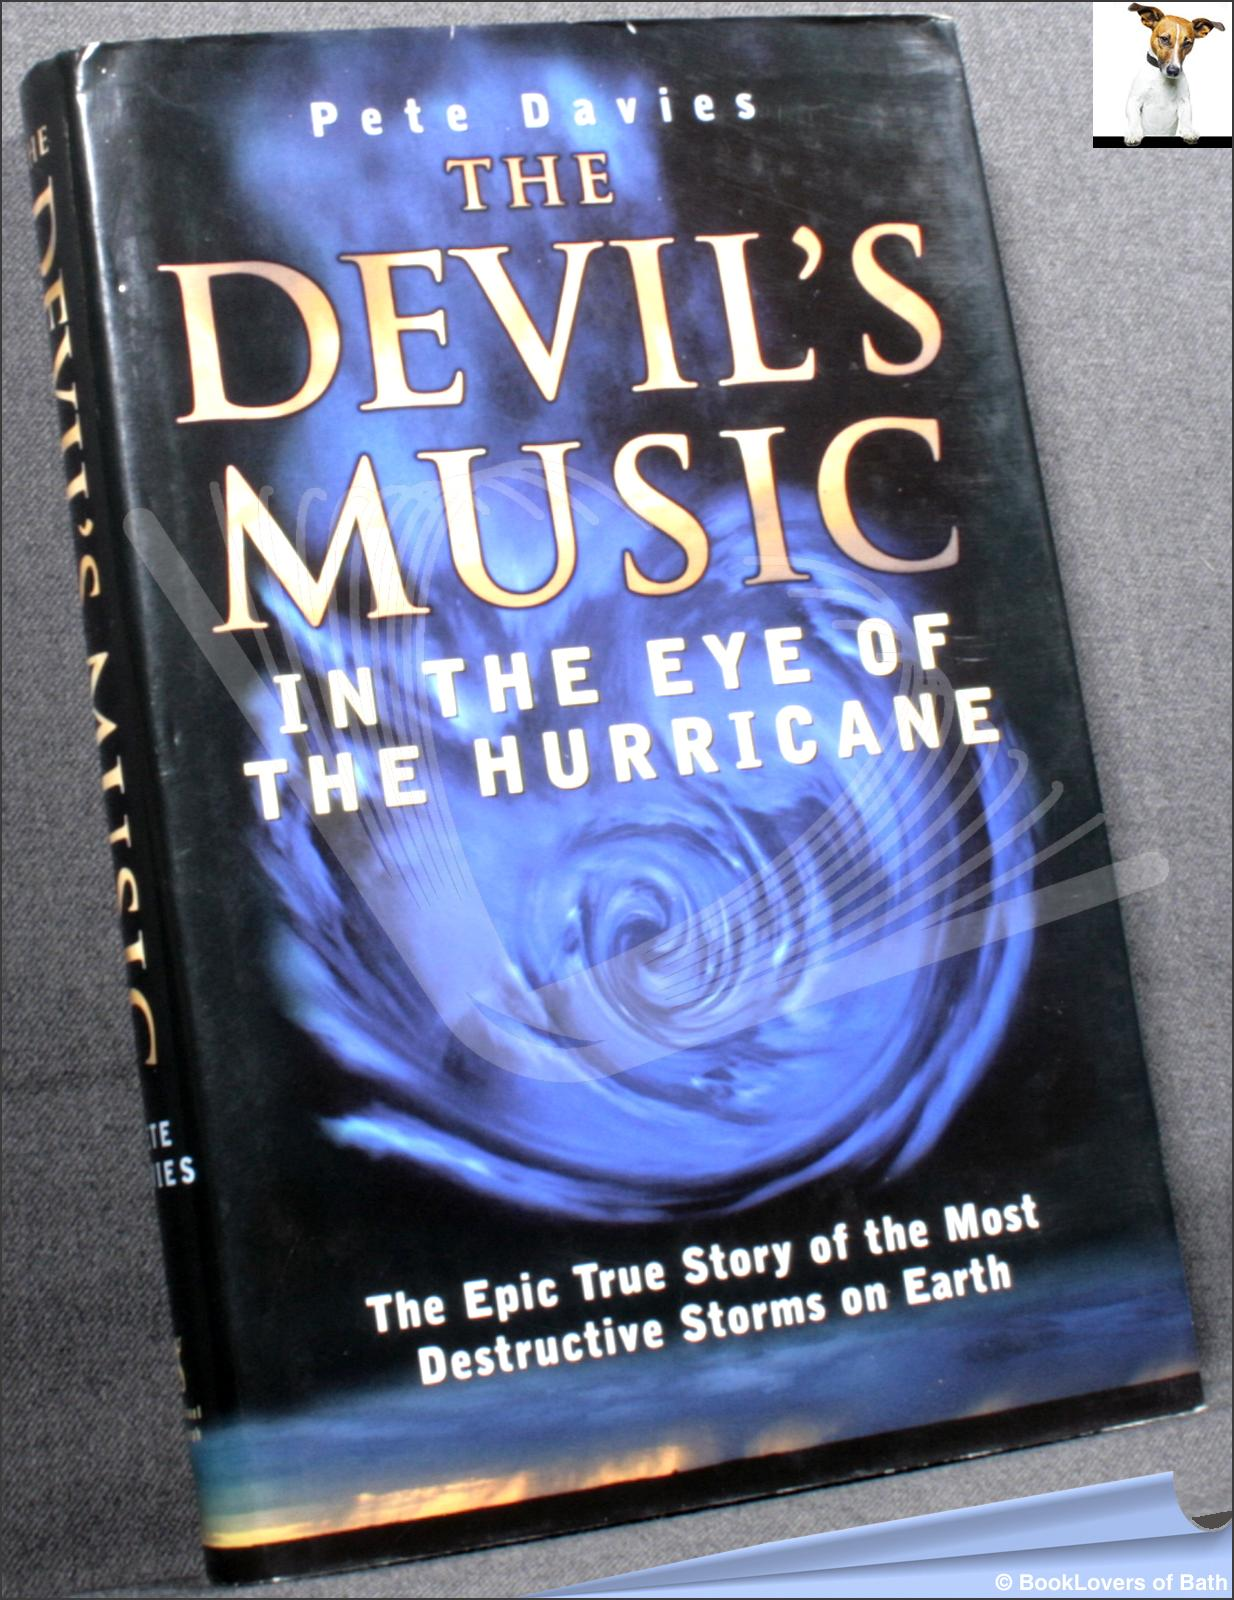 The Devil's Music: In the Eye of the Hurricane - Pete Davies